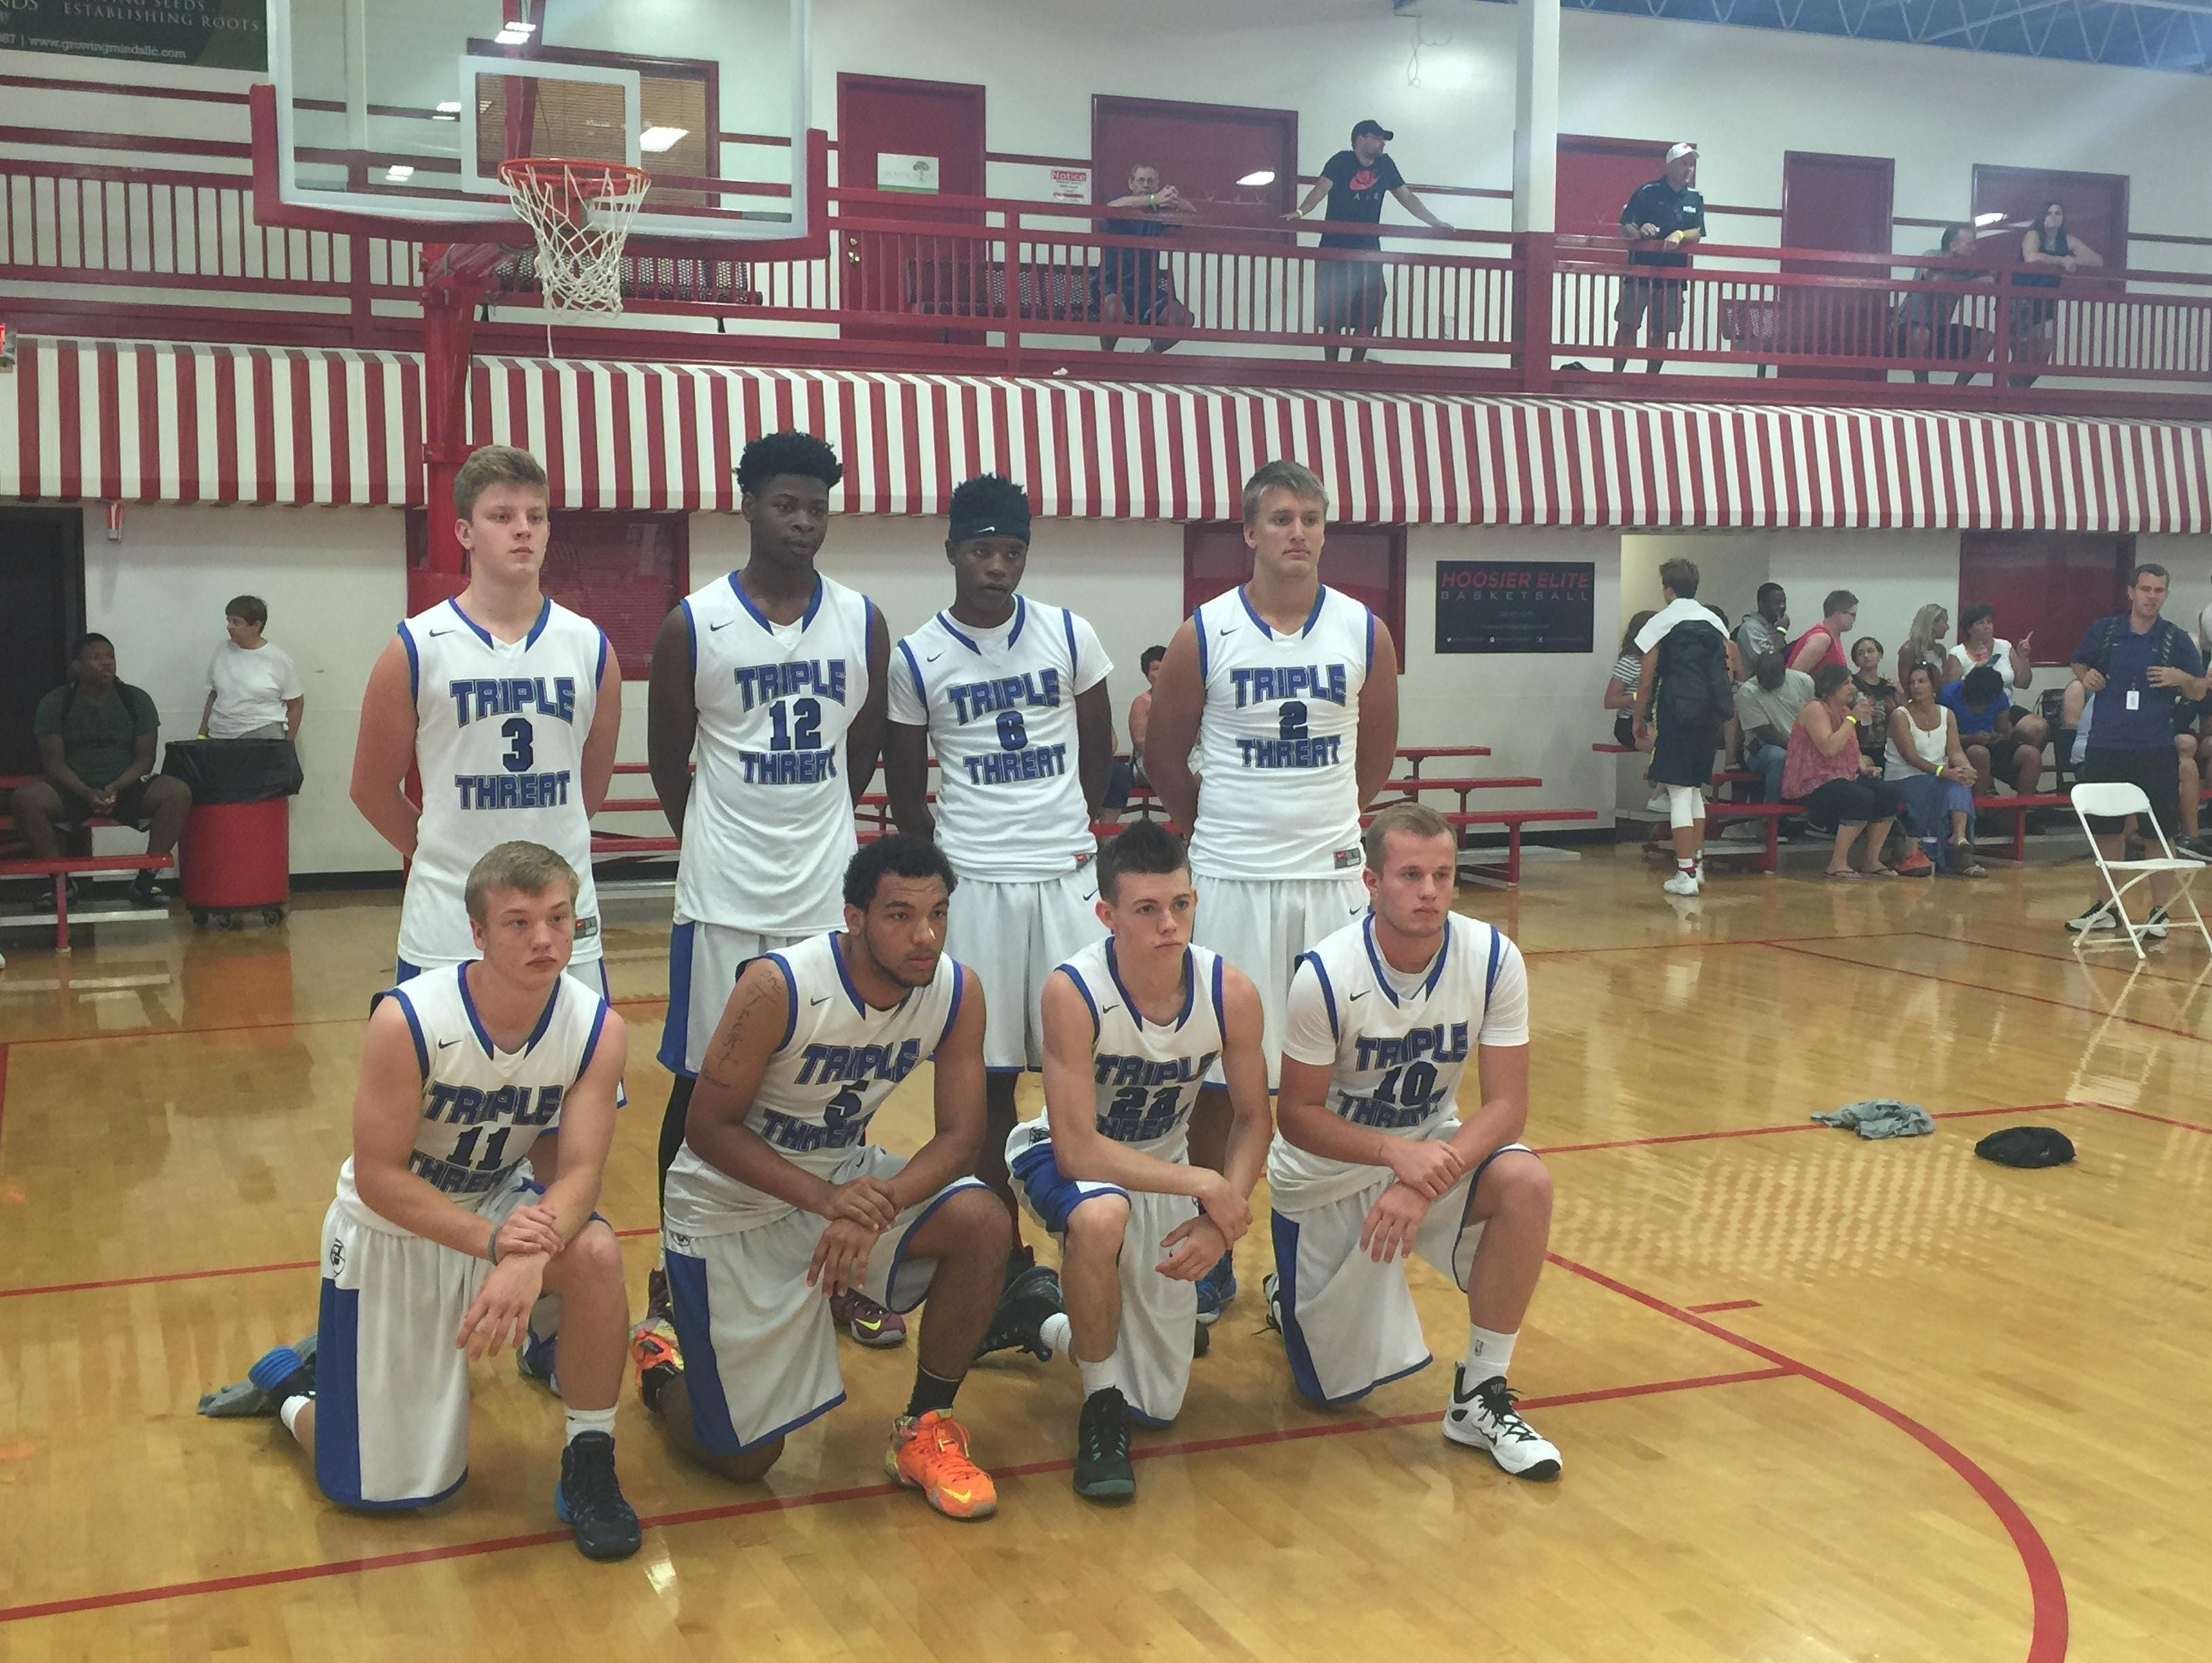 The 17U Michigan Triple Threat AAU team consists of nine Lansing and Greater Lansing-area basketball players.